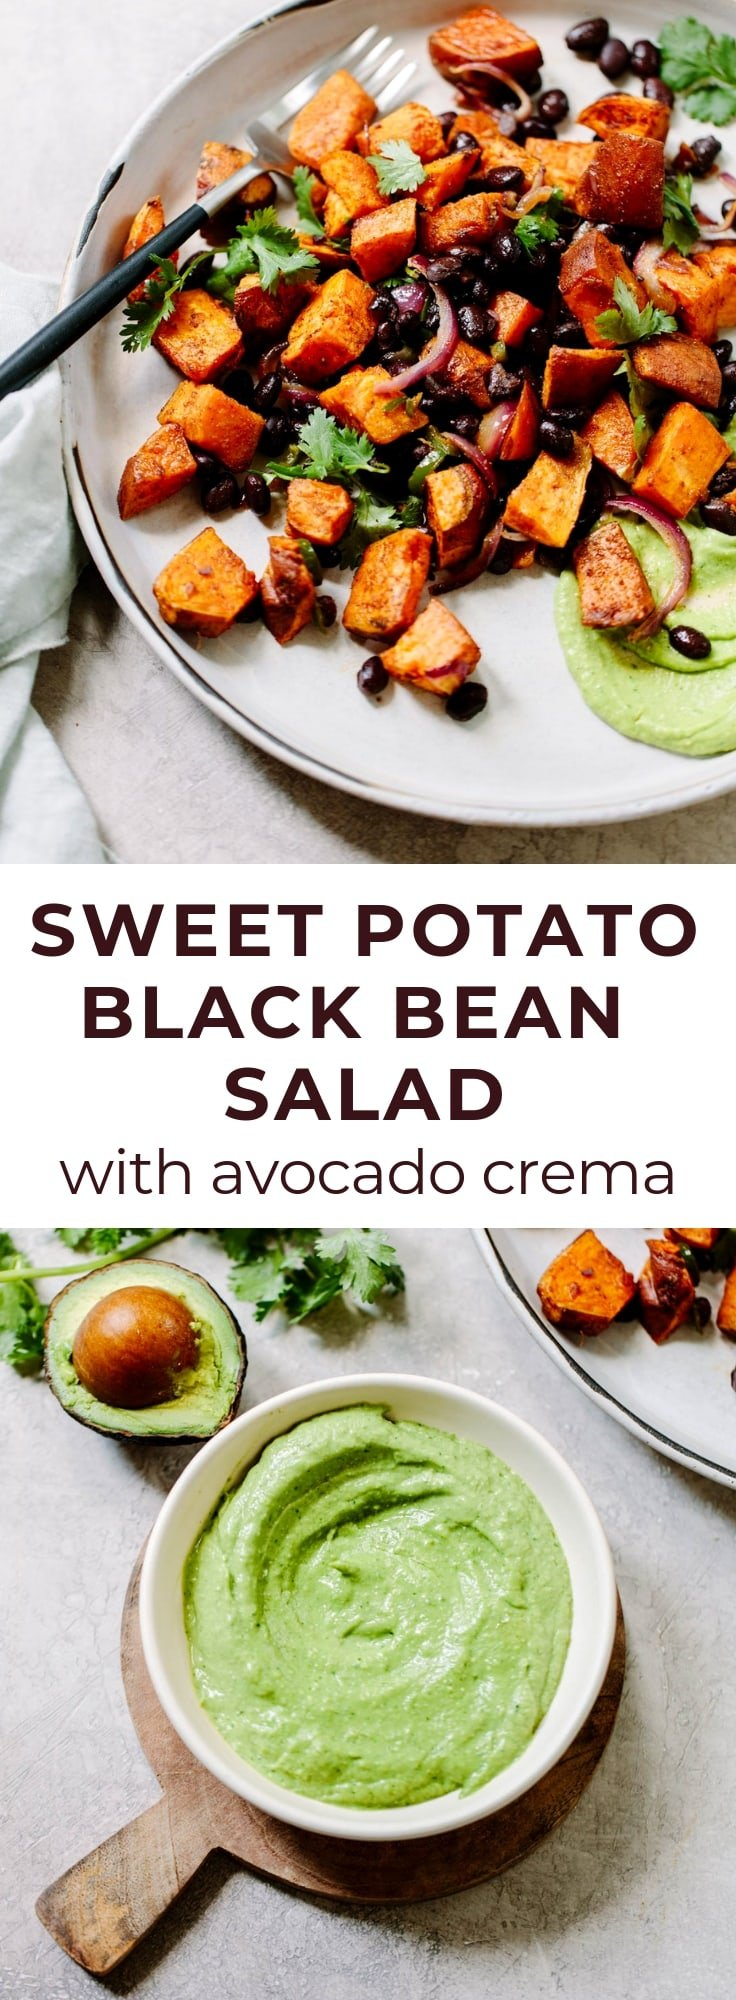 Roasted Sweet Potato Salad with Avocado Crema - Delicious and healthy vegetarian salad packed with flavor.